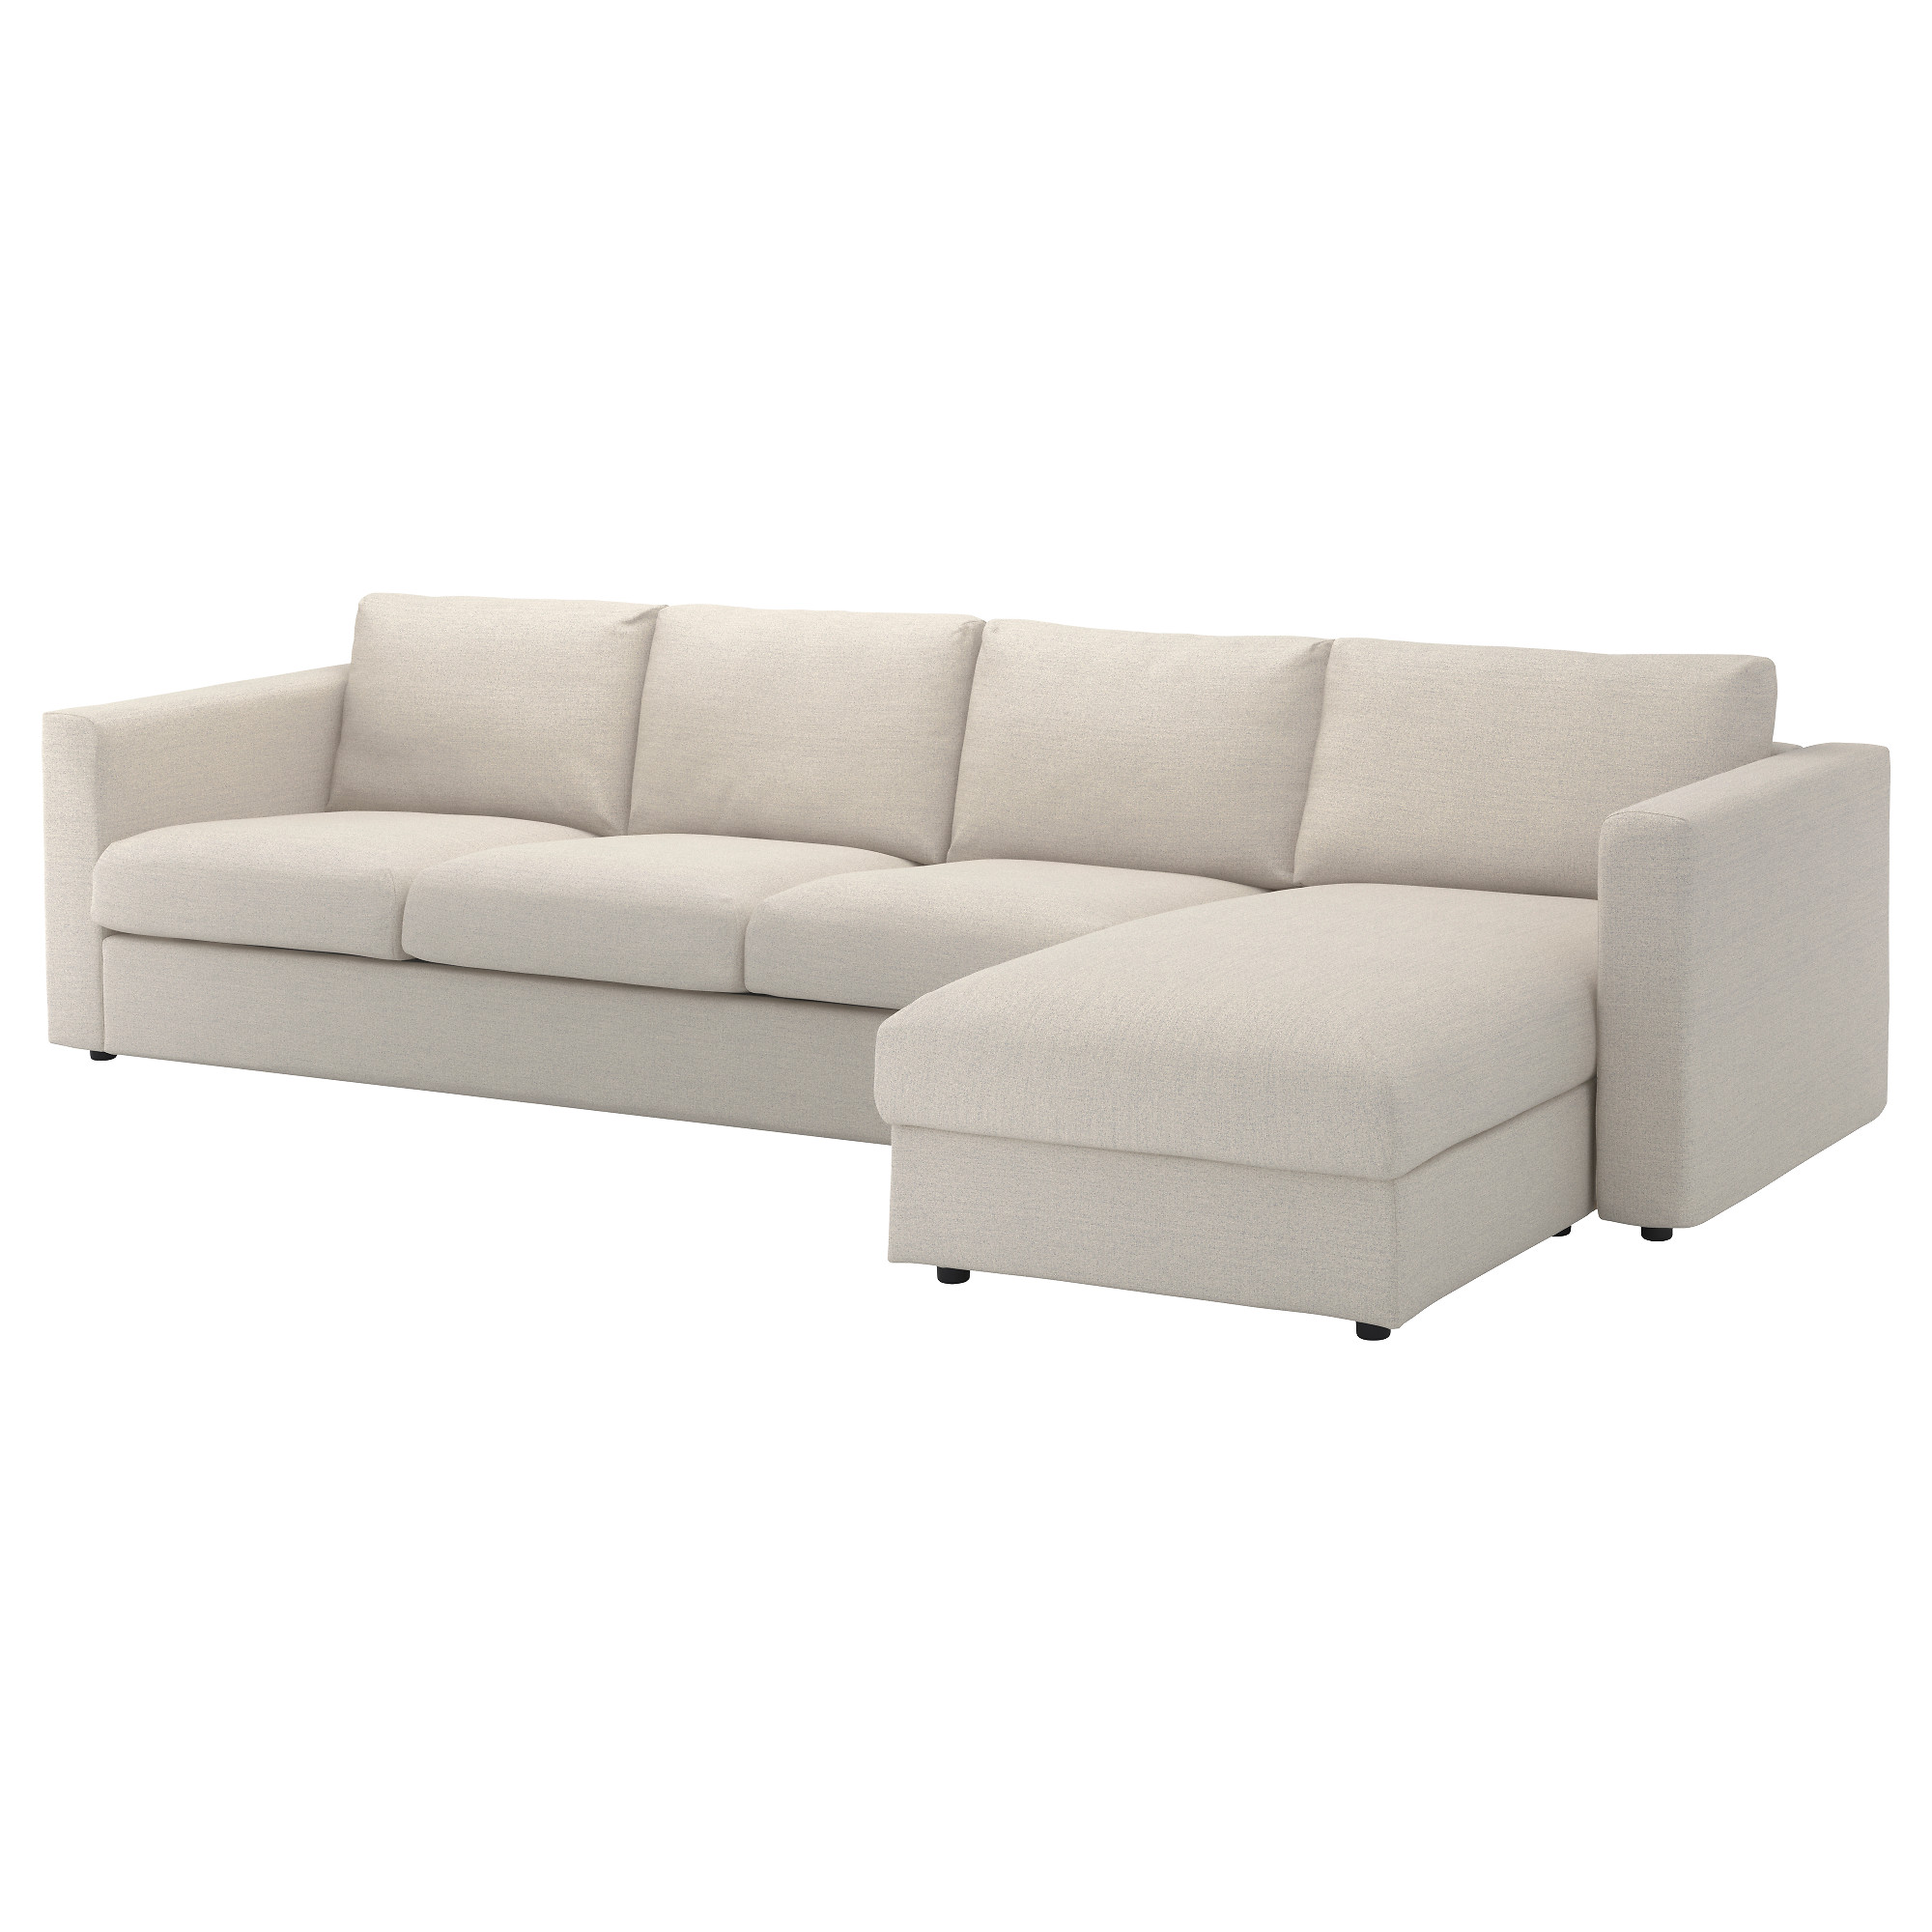 4-seat sofa VIMLE with chaise longue, Gunnared beige